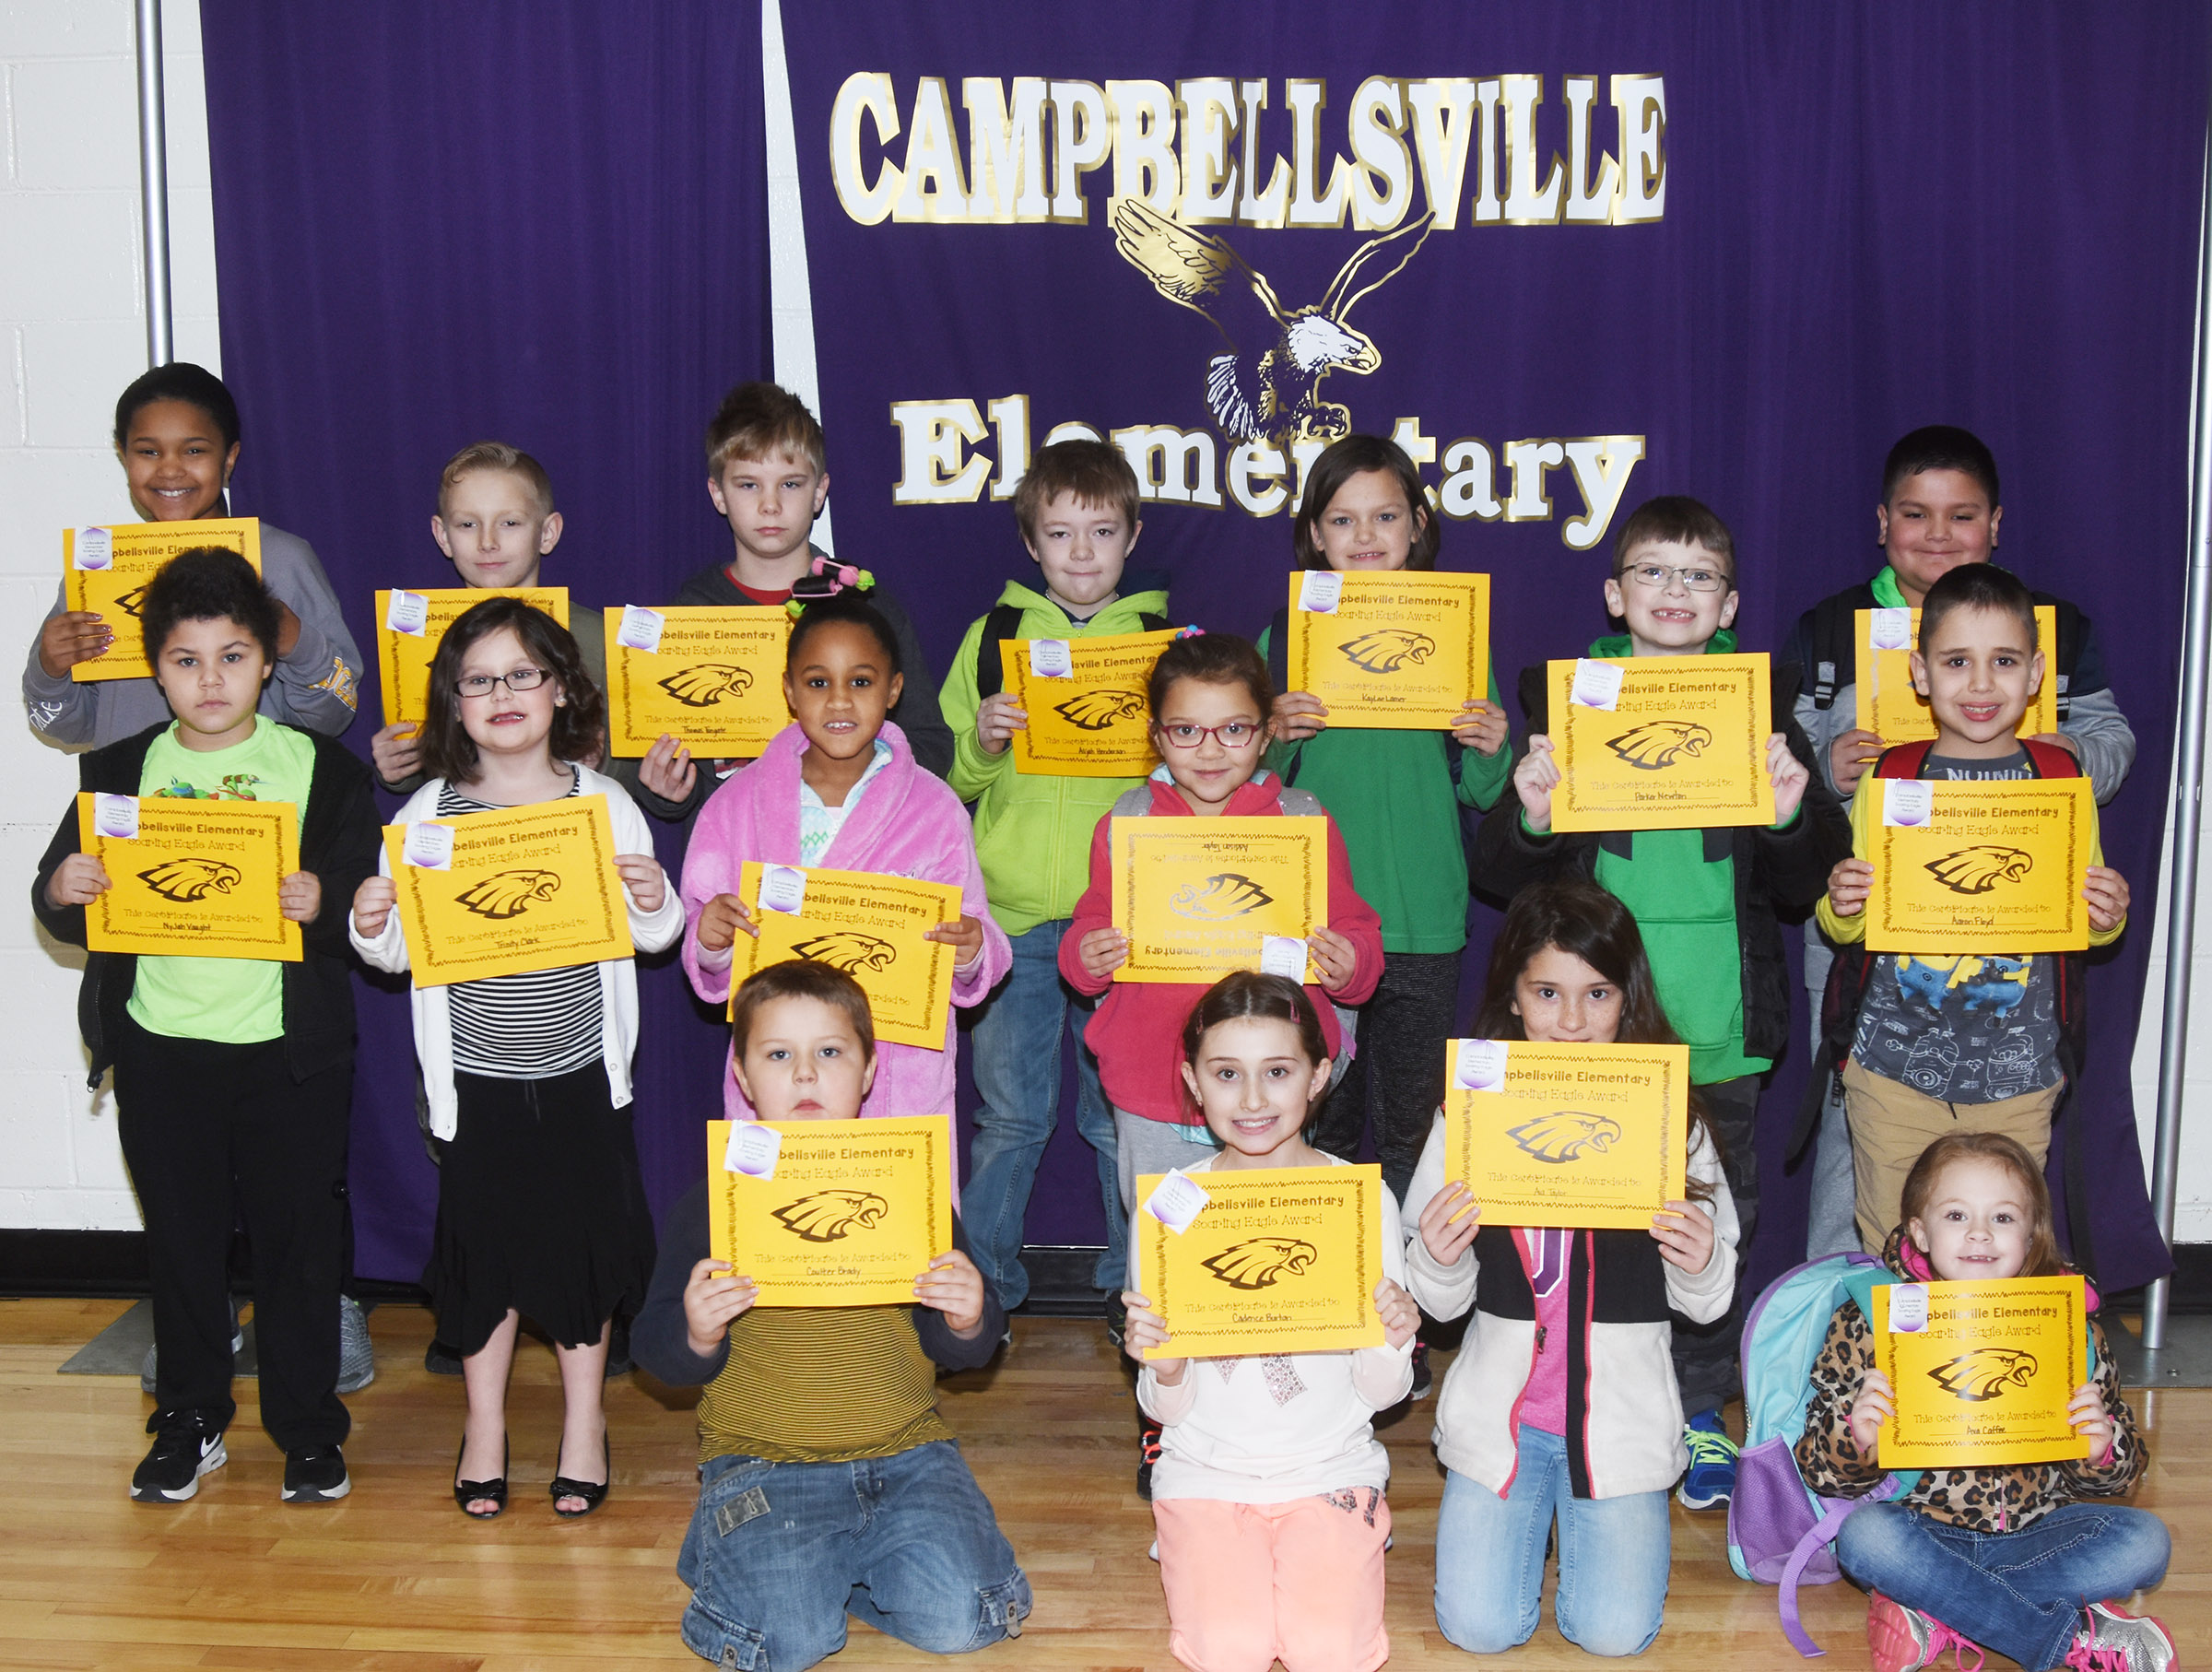 From left, front, are kindergartener Coulter Brady, third-graders Cadence Burton and Ava Taylor and first-grader Ava Caffee. Second row, first-graders NyJah Vaught and Trinity Clark, second-grader Kadance Ford, kindergartener Addisyn Taylor and second-grader Aaron Floyd. Back, fifth-graders Jaclyn Jackson, Austin Gabbert and Thomas Tungate, third-graders Alijah Henderson and KayLee Lamer, first-grader Parker Newton and second-grader Alex Mixtega. Absent from the photo are kindergarteners Brayden Carmicle and Lukas Adams, first-grader Aliyah Litsey, second-graders Gracie Murphy and Owen Skaggs, third-grader Anna Keith and fifth-grader Ethan Cox.